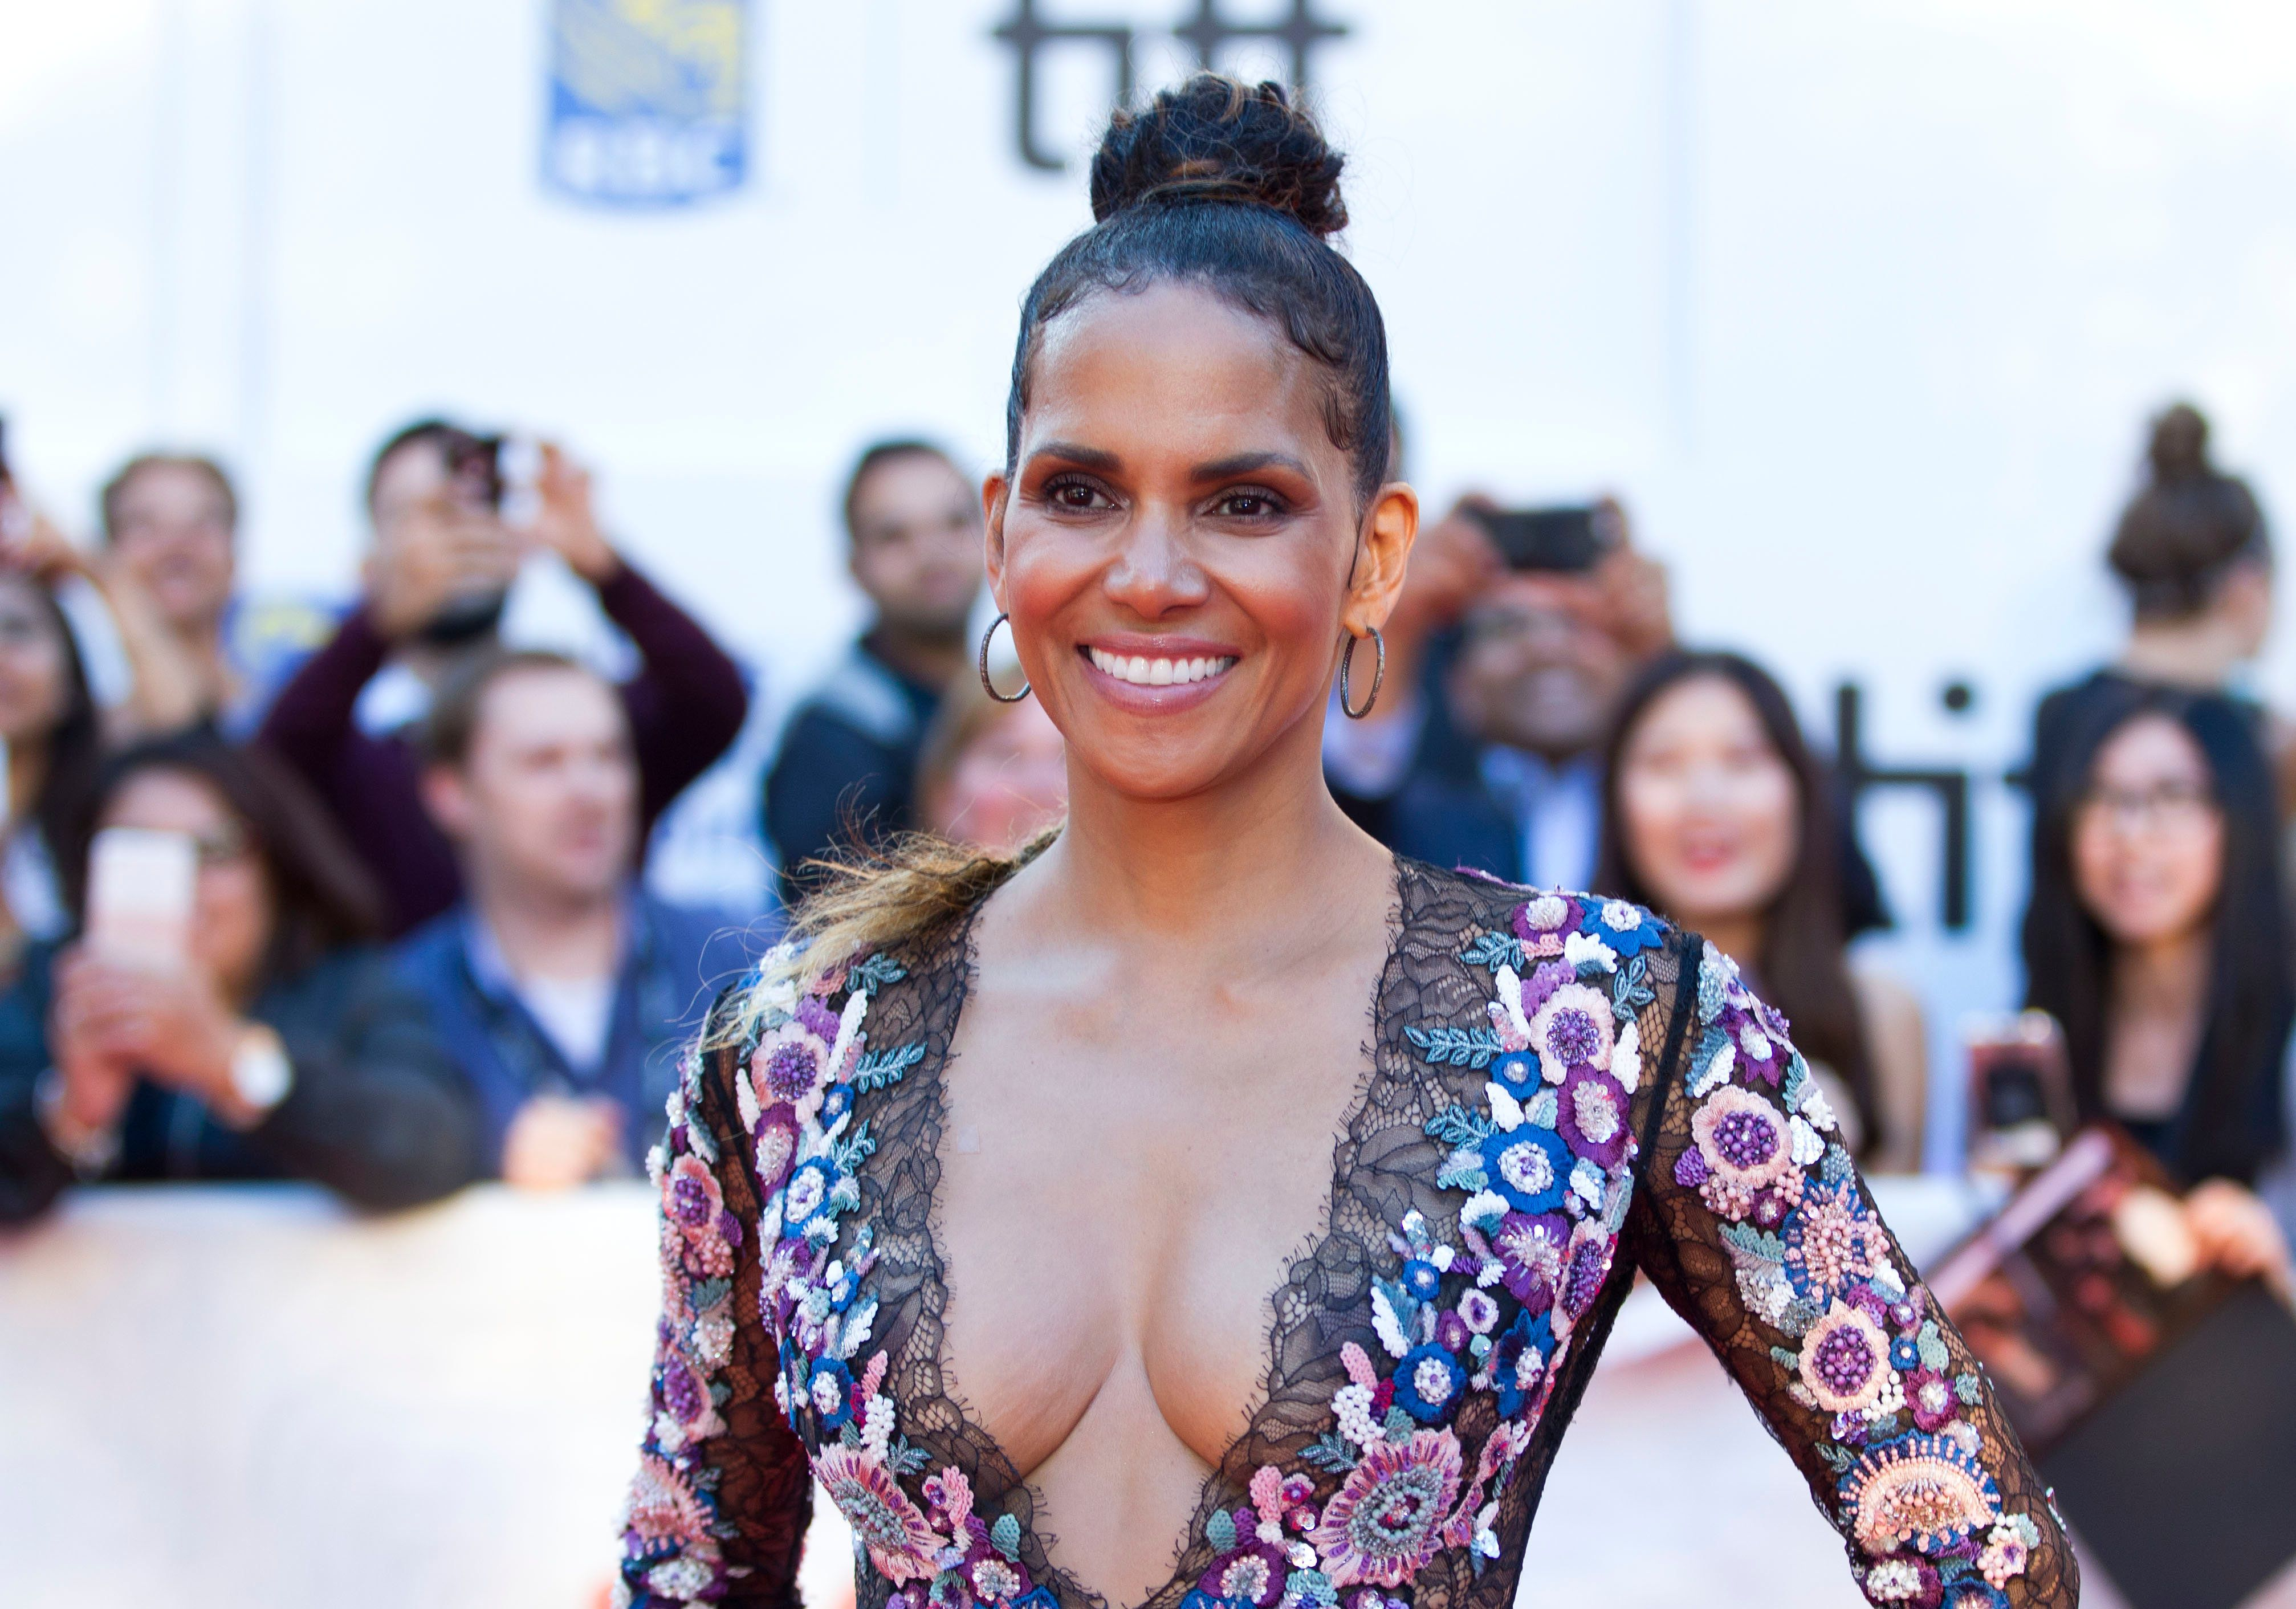 Actress Halle Berry attends the world premiere of 'Kings' during the 2017 Toronto International Film Festival on September 13, 2017 in Toronto, Ontario. / AFP PHOTO / GEOFF ROBINS        (Photo credit should read GEOFF ROBINS/AFP/Getty Images)